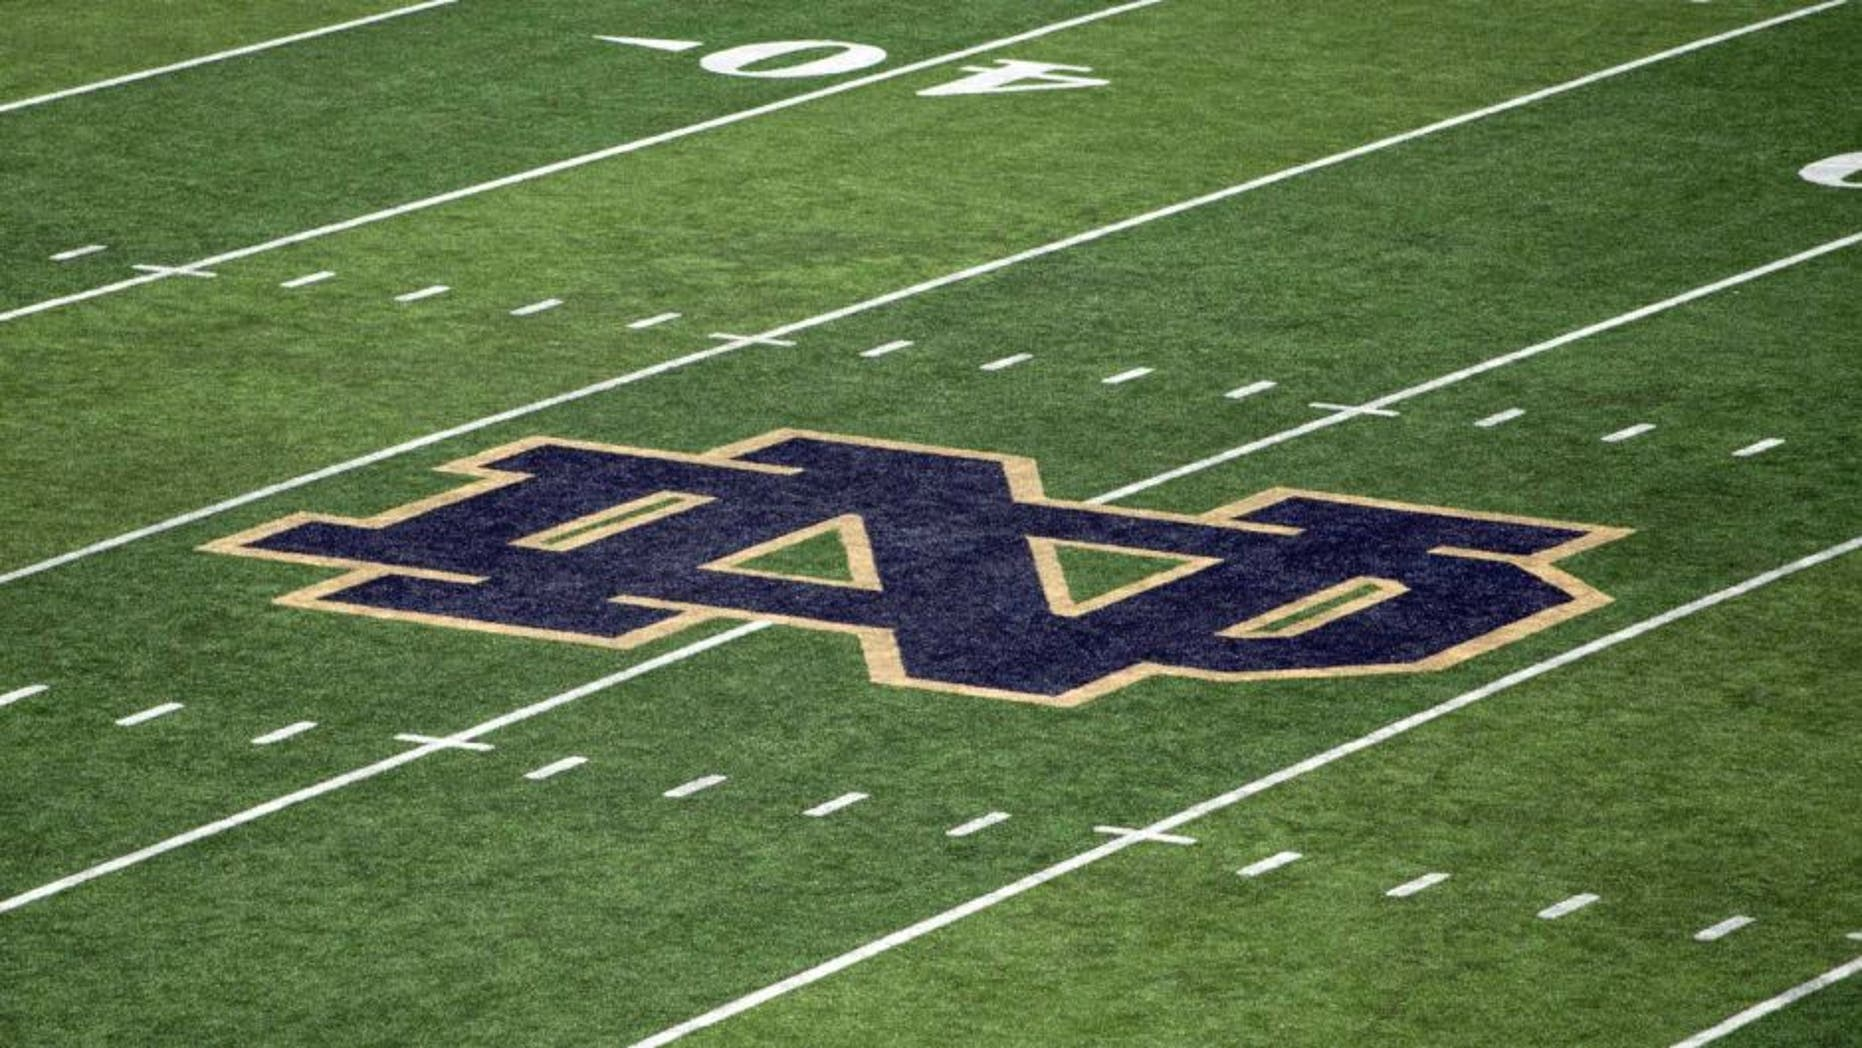 Oct 11, 2014; South Bend, IN, USA; A general view of the monogram on the 50 yard line of Notre Dame Stadium before the game between the Notre Dame Fighting Irish and the North Carolina Tar Heels. Mandatory Credit: Matt Cashore-USA TODAY Sports